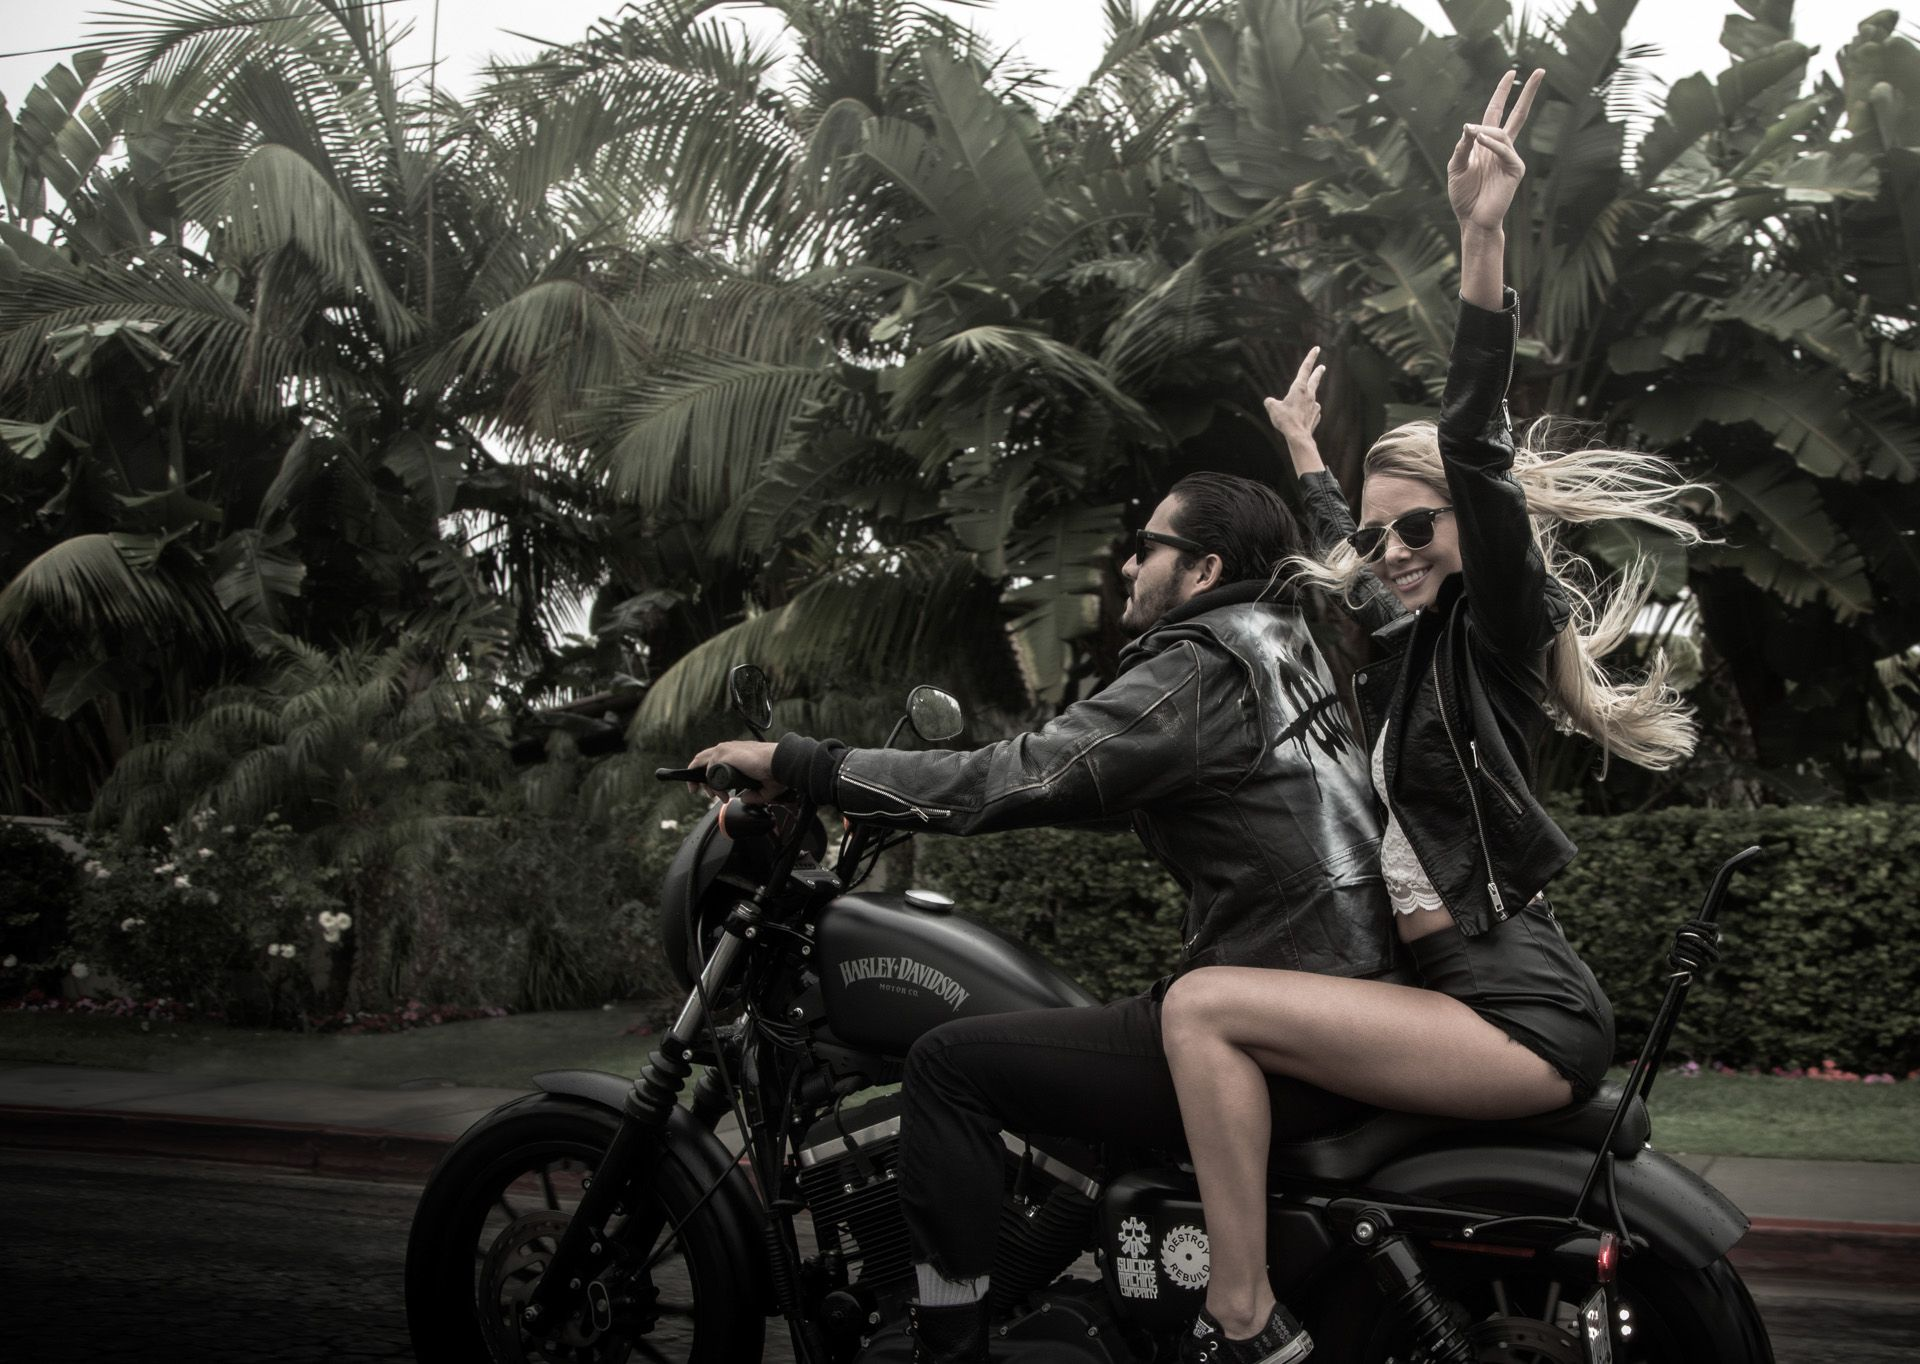 Couple Motorcycle Love Wallpaper For PC